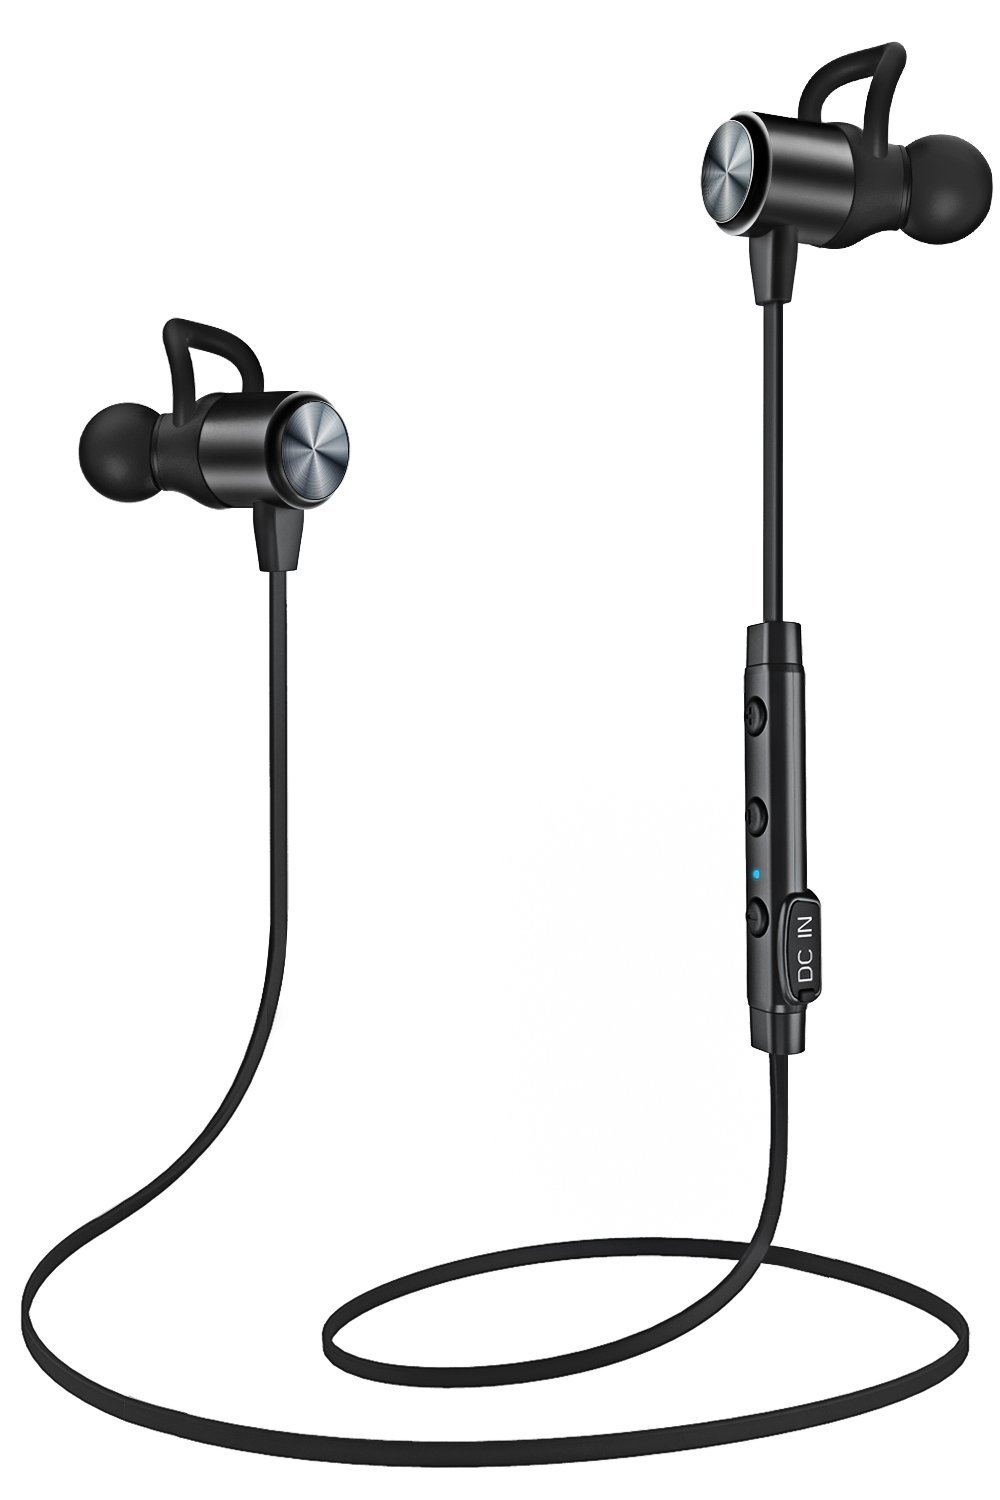 ATGOIN Bluetooth Headphones With Microphone